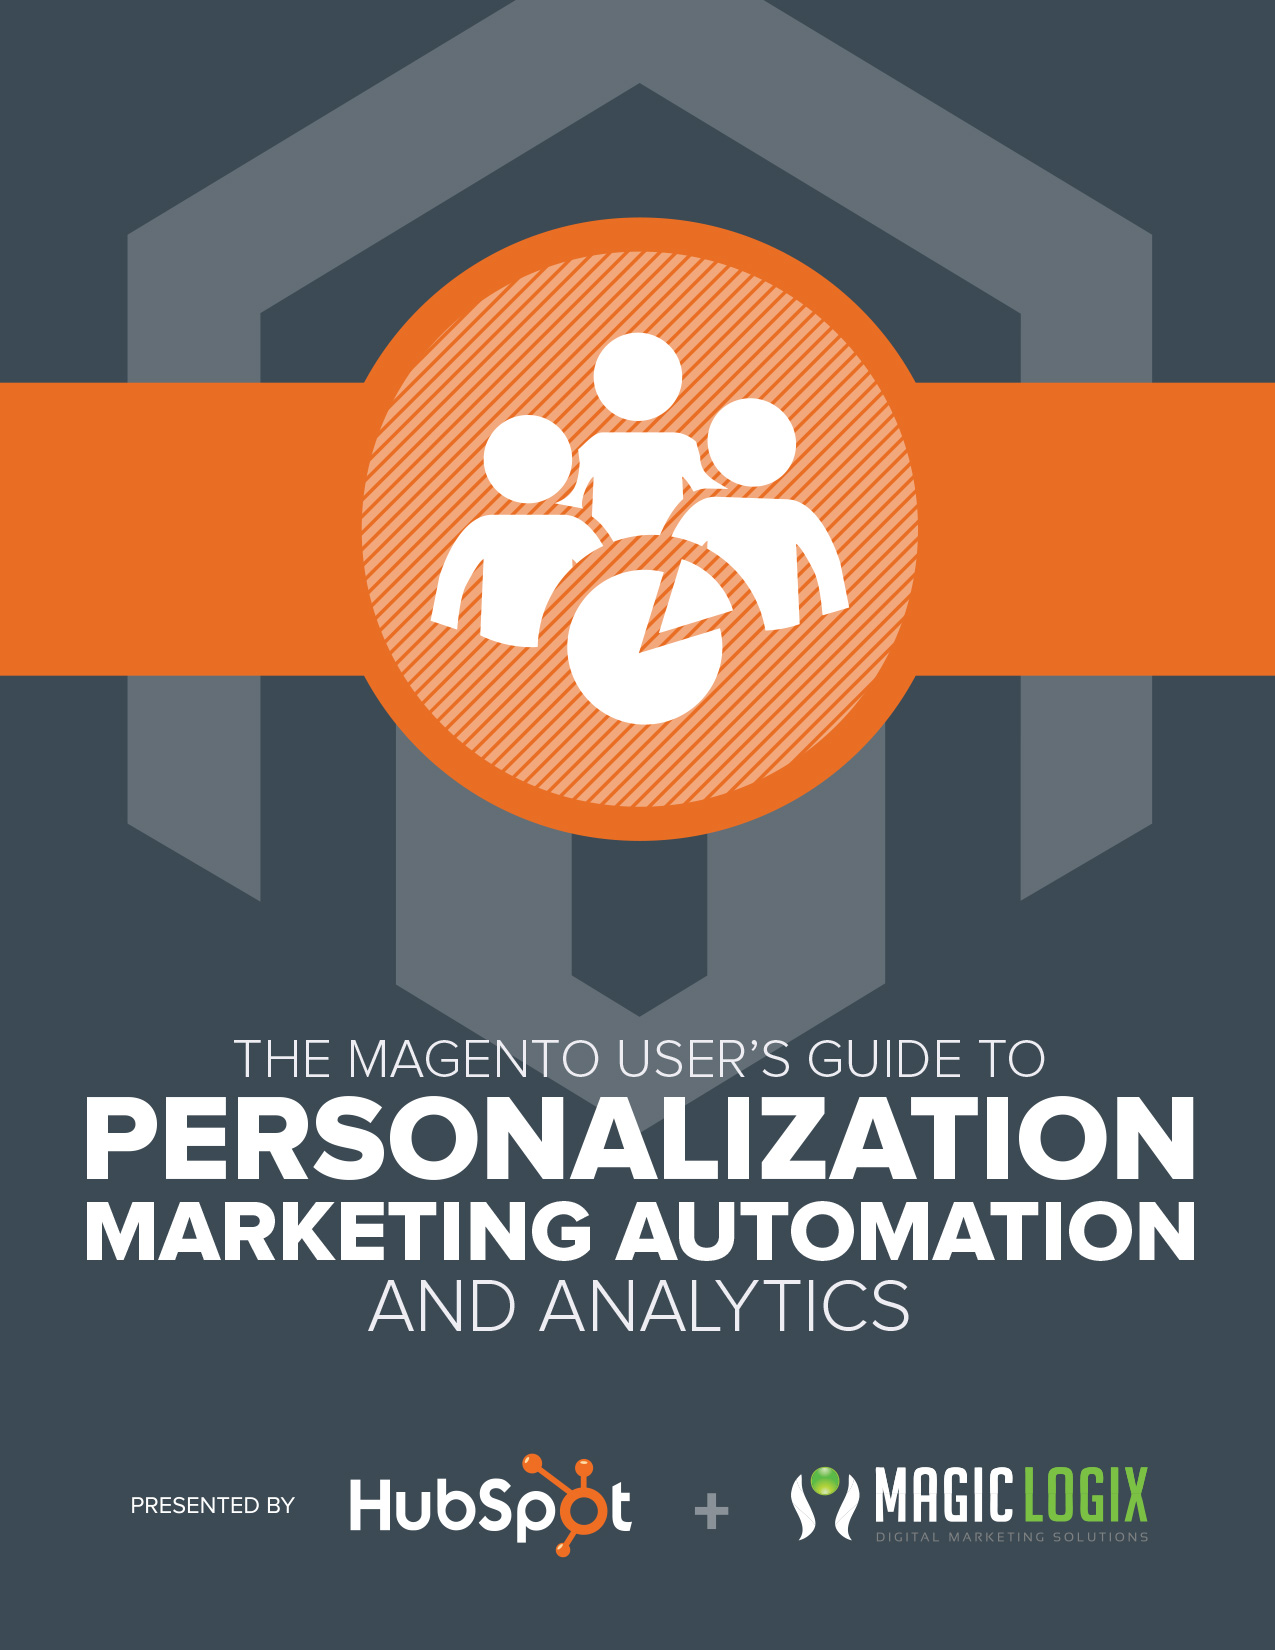 Magento User's Guide to Personalization, Marketing Automation and Analytics